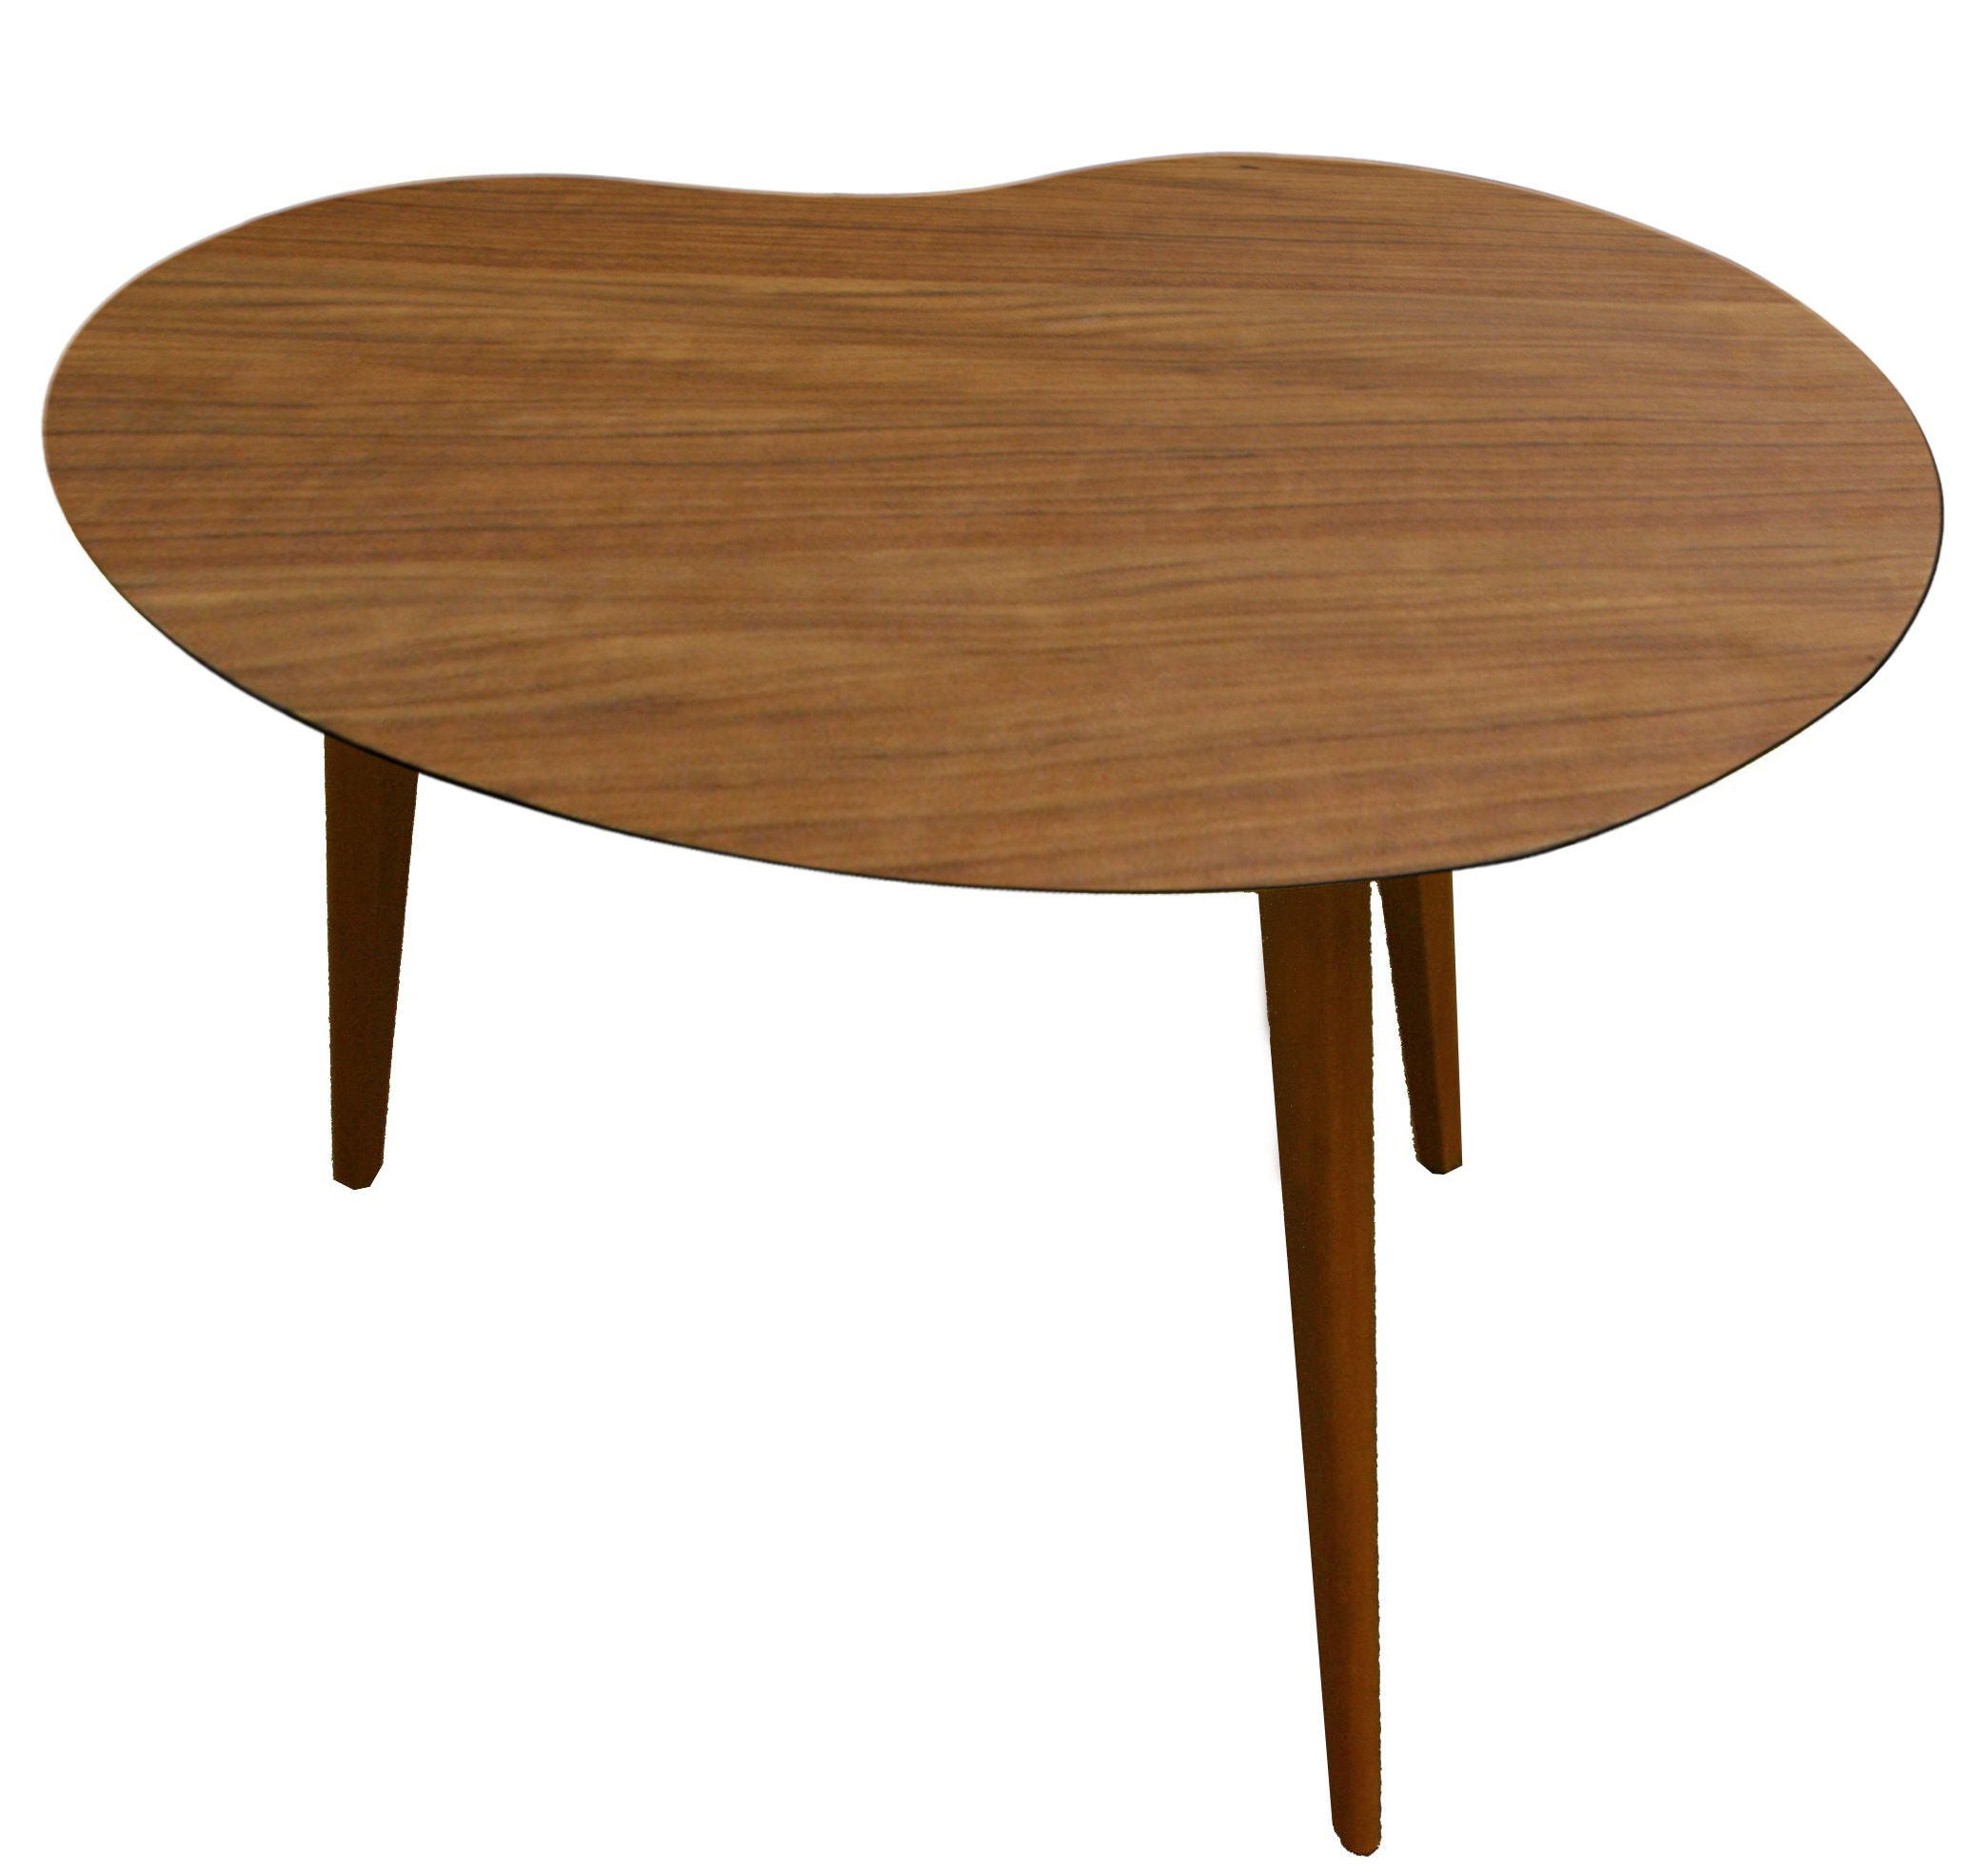 Lalinde coffee table bean large wood legs teak for Large wooden coffee tables